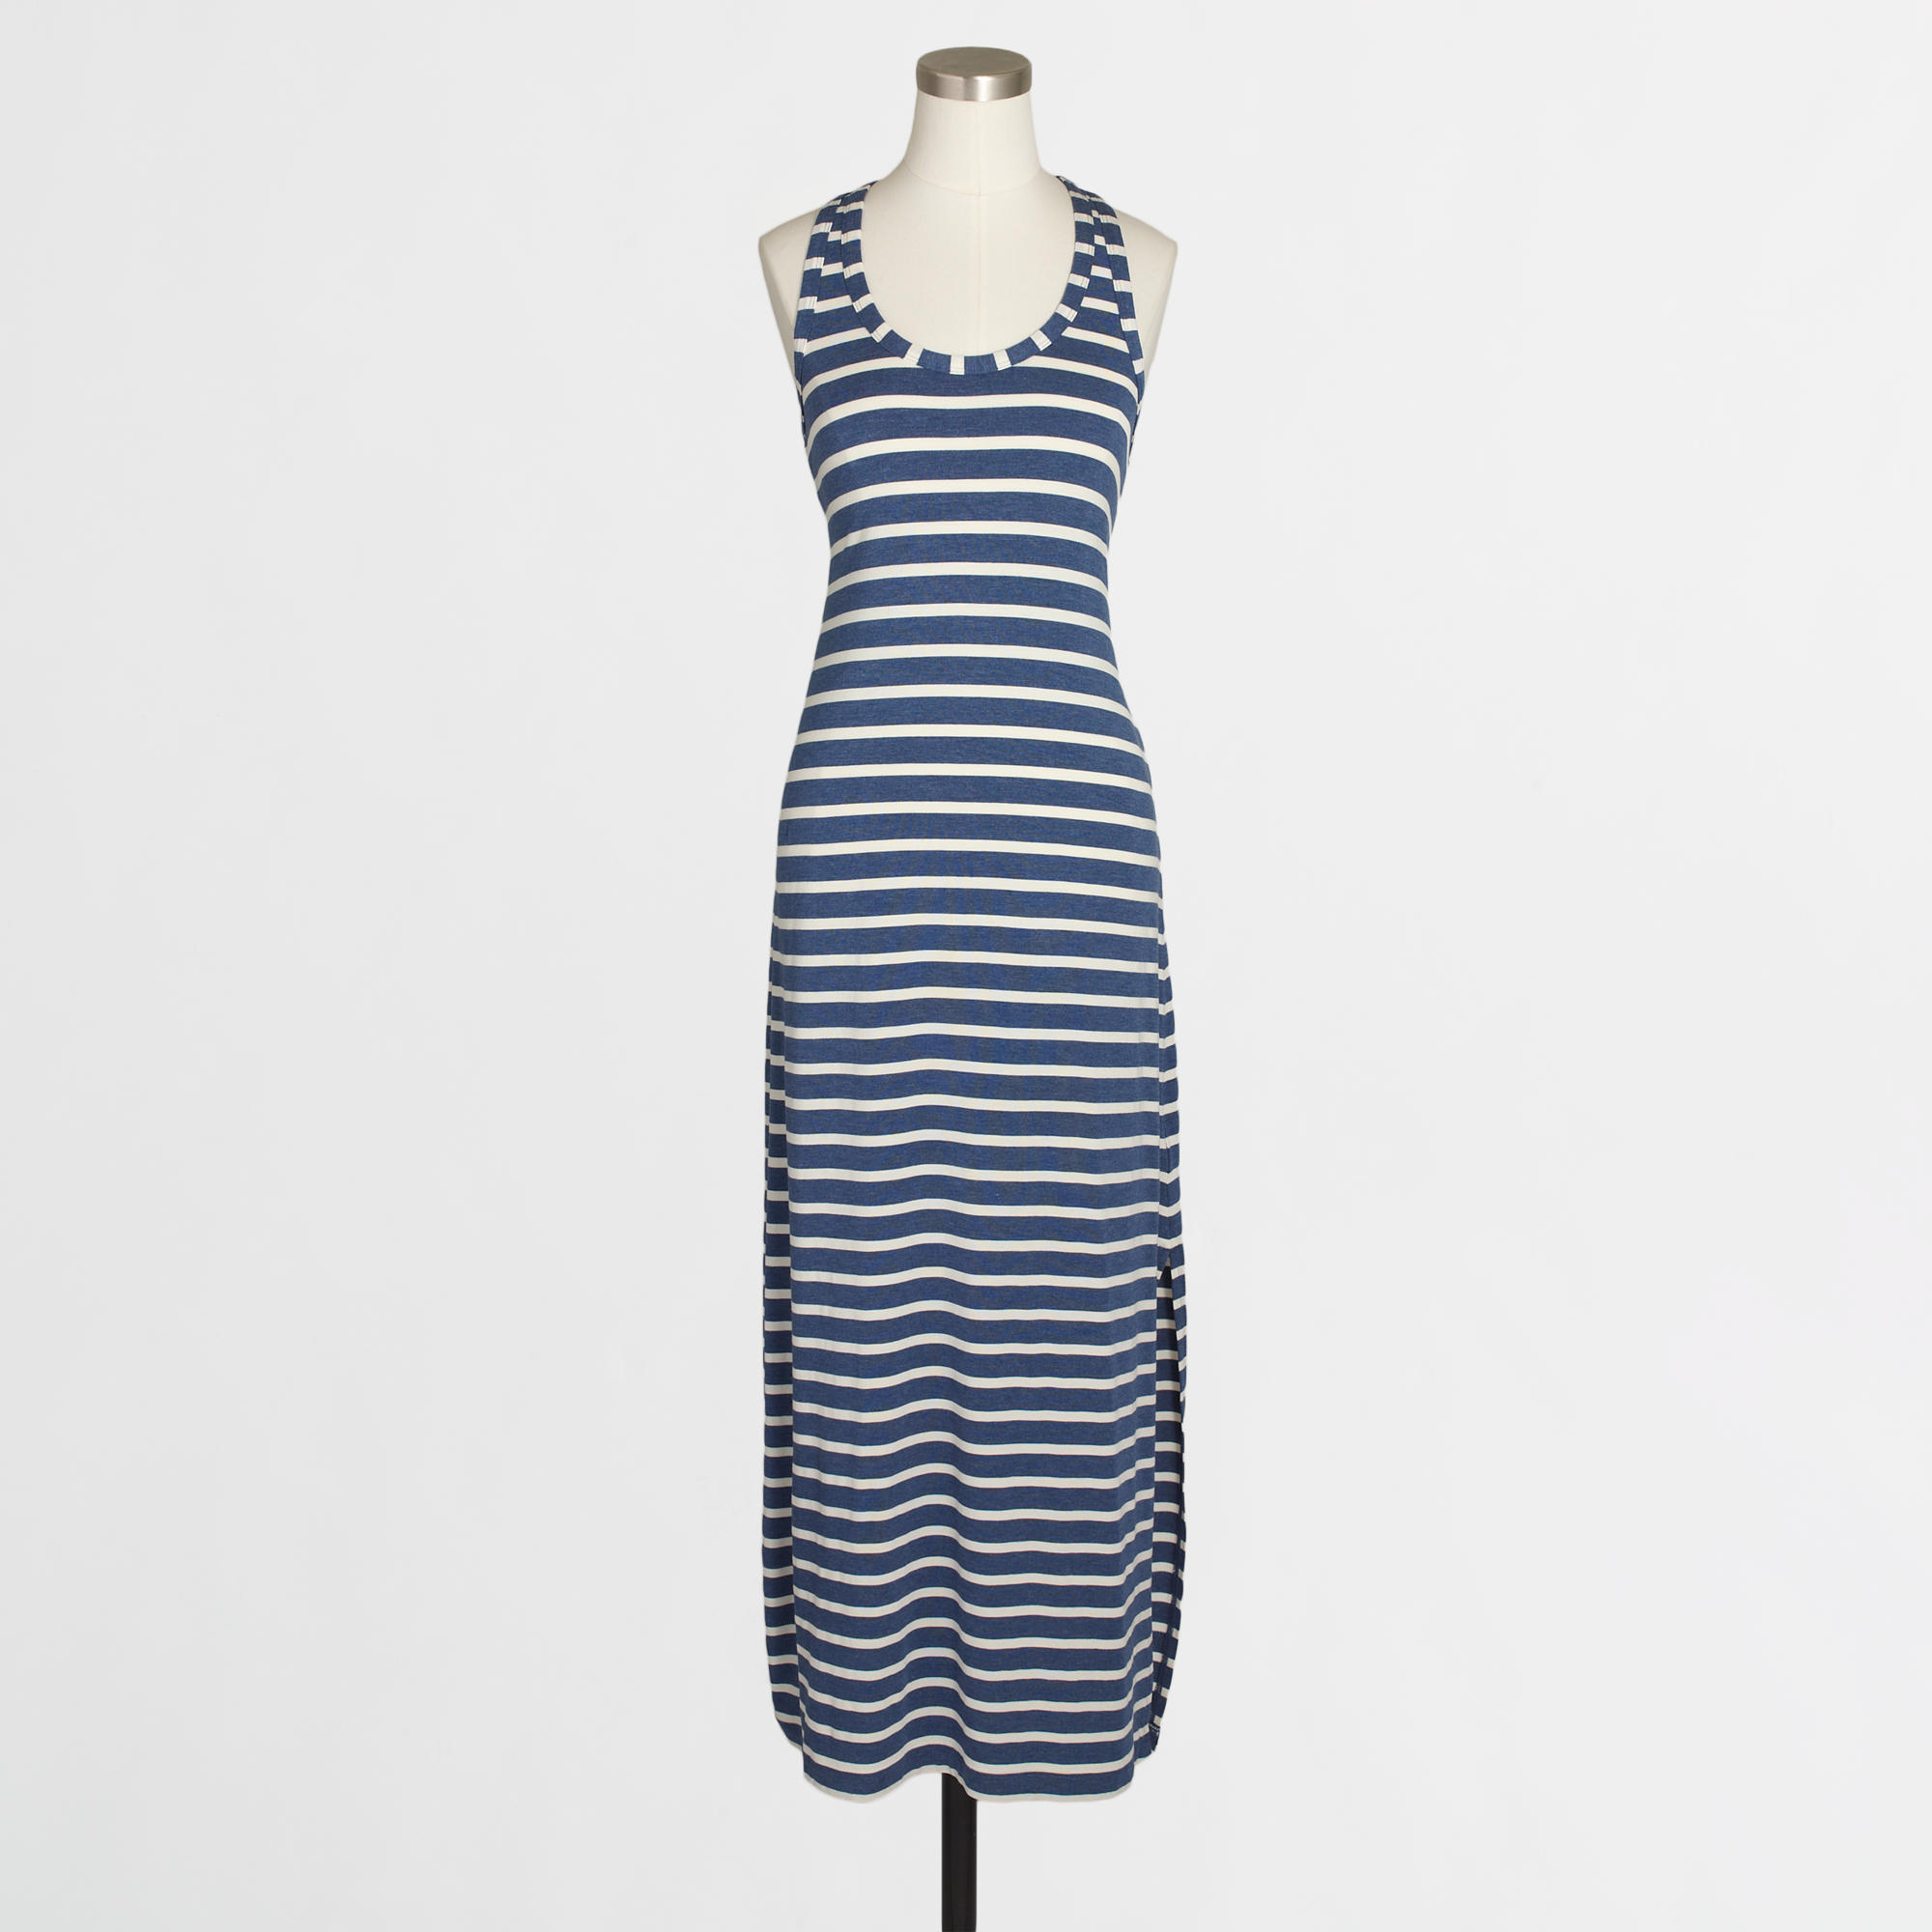 J.Crew Factory Knit Raceback Maxi Dress in Stripe